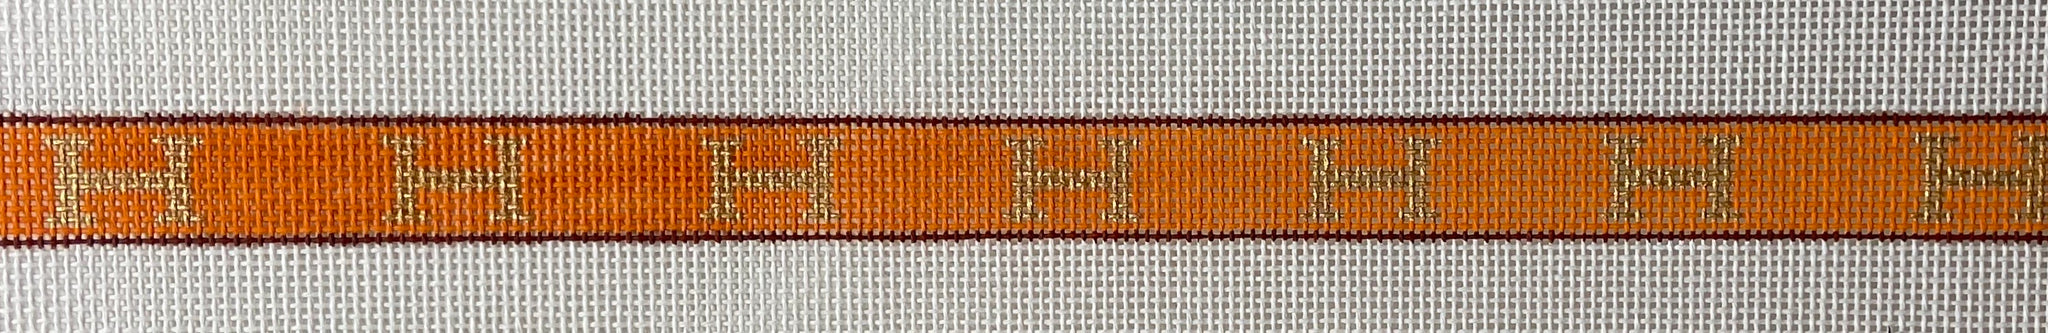 Sunglass Strap – Hermès H's – gold, brown & orange